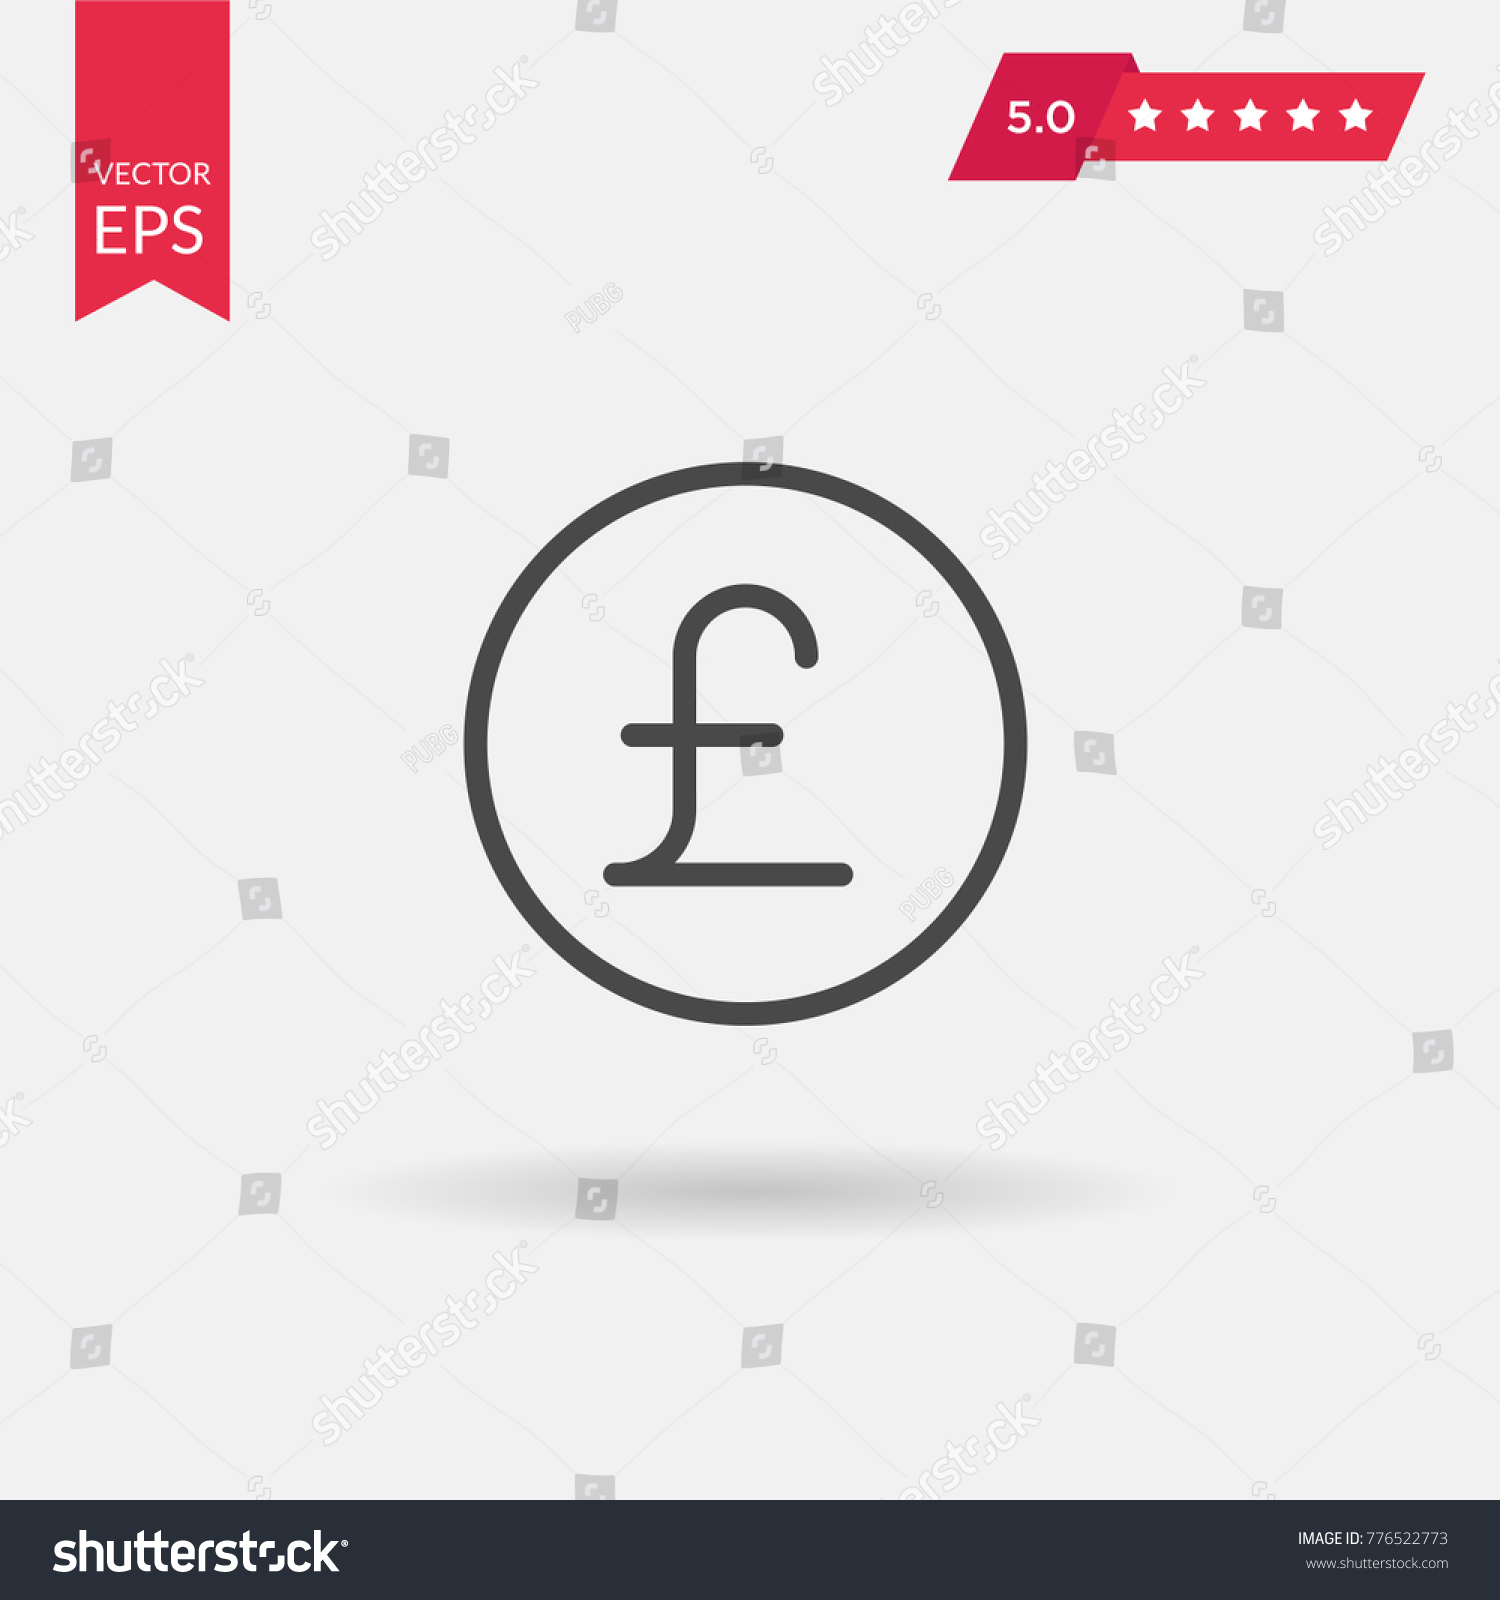 Pound sign icon gbp currency symbol stock vector 776522773 pound sign icon gbp currency symbol money label on white background vector buycottarizona Choice Image